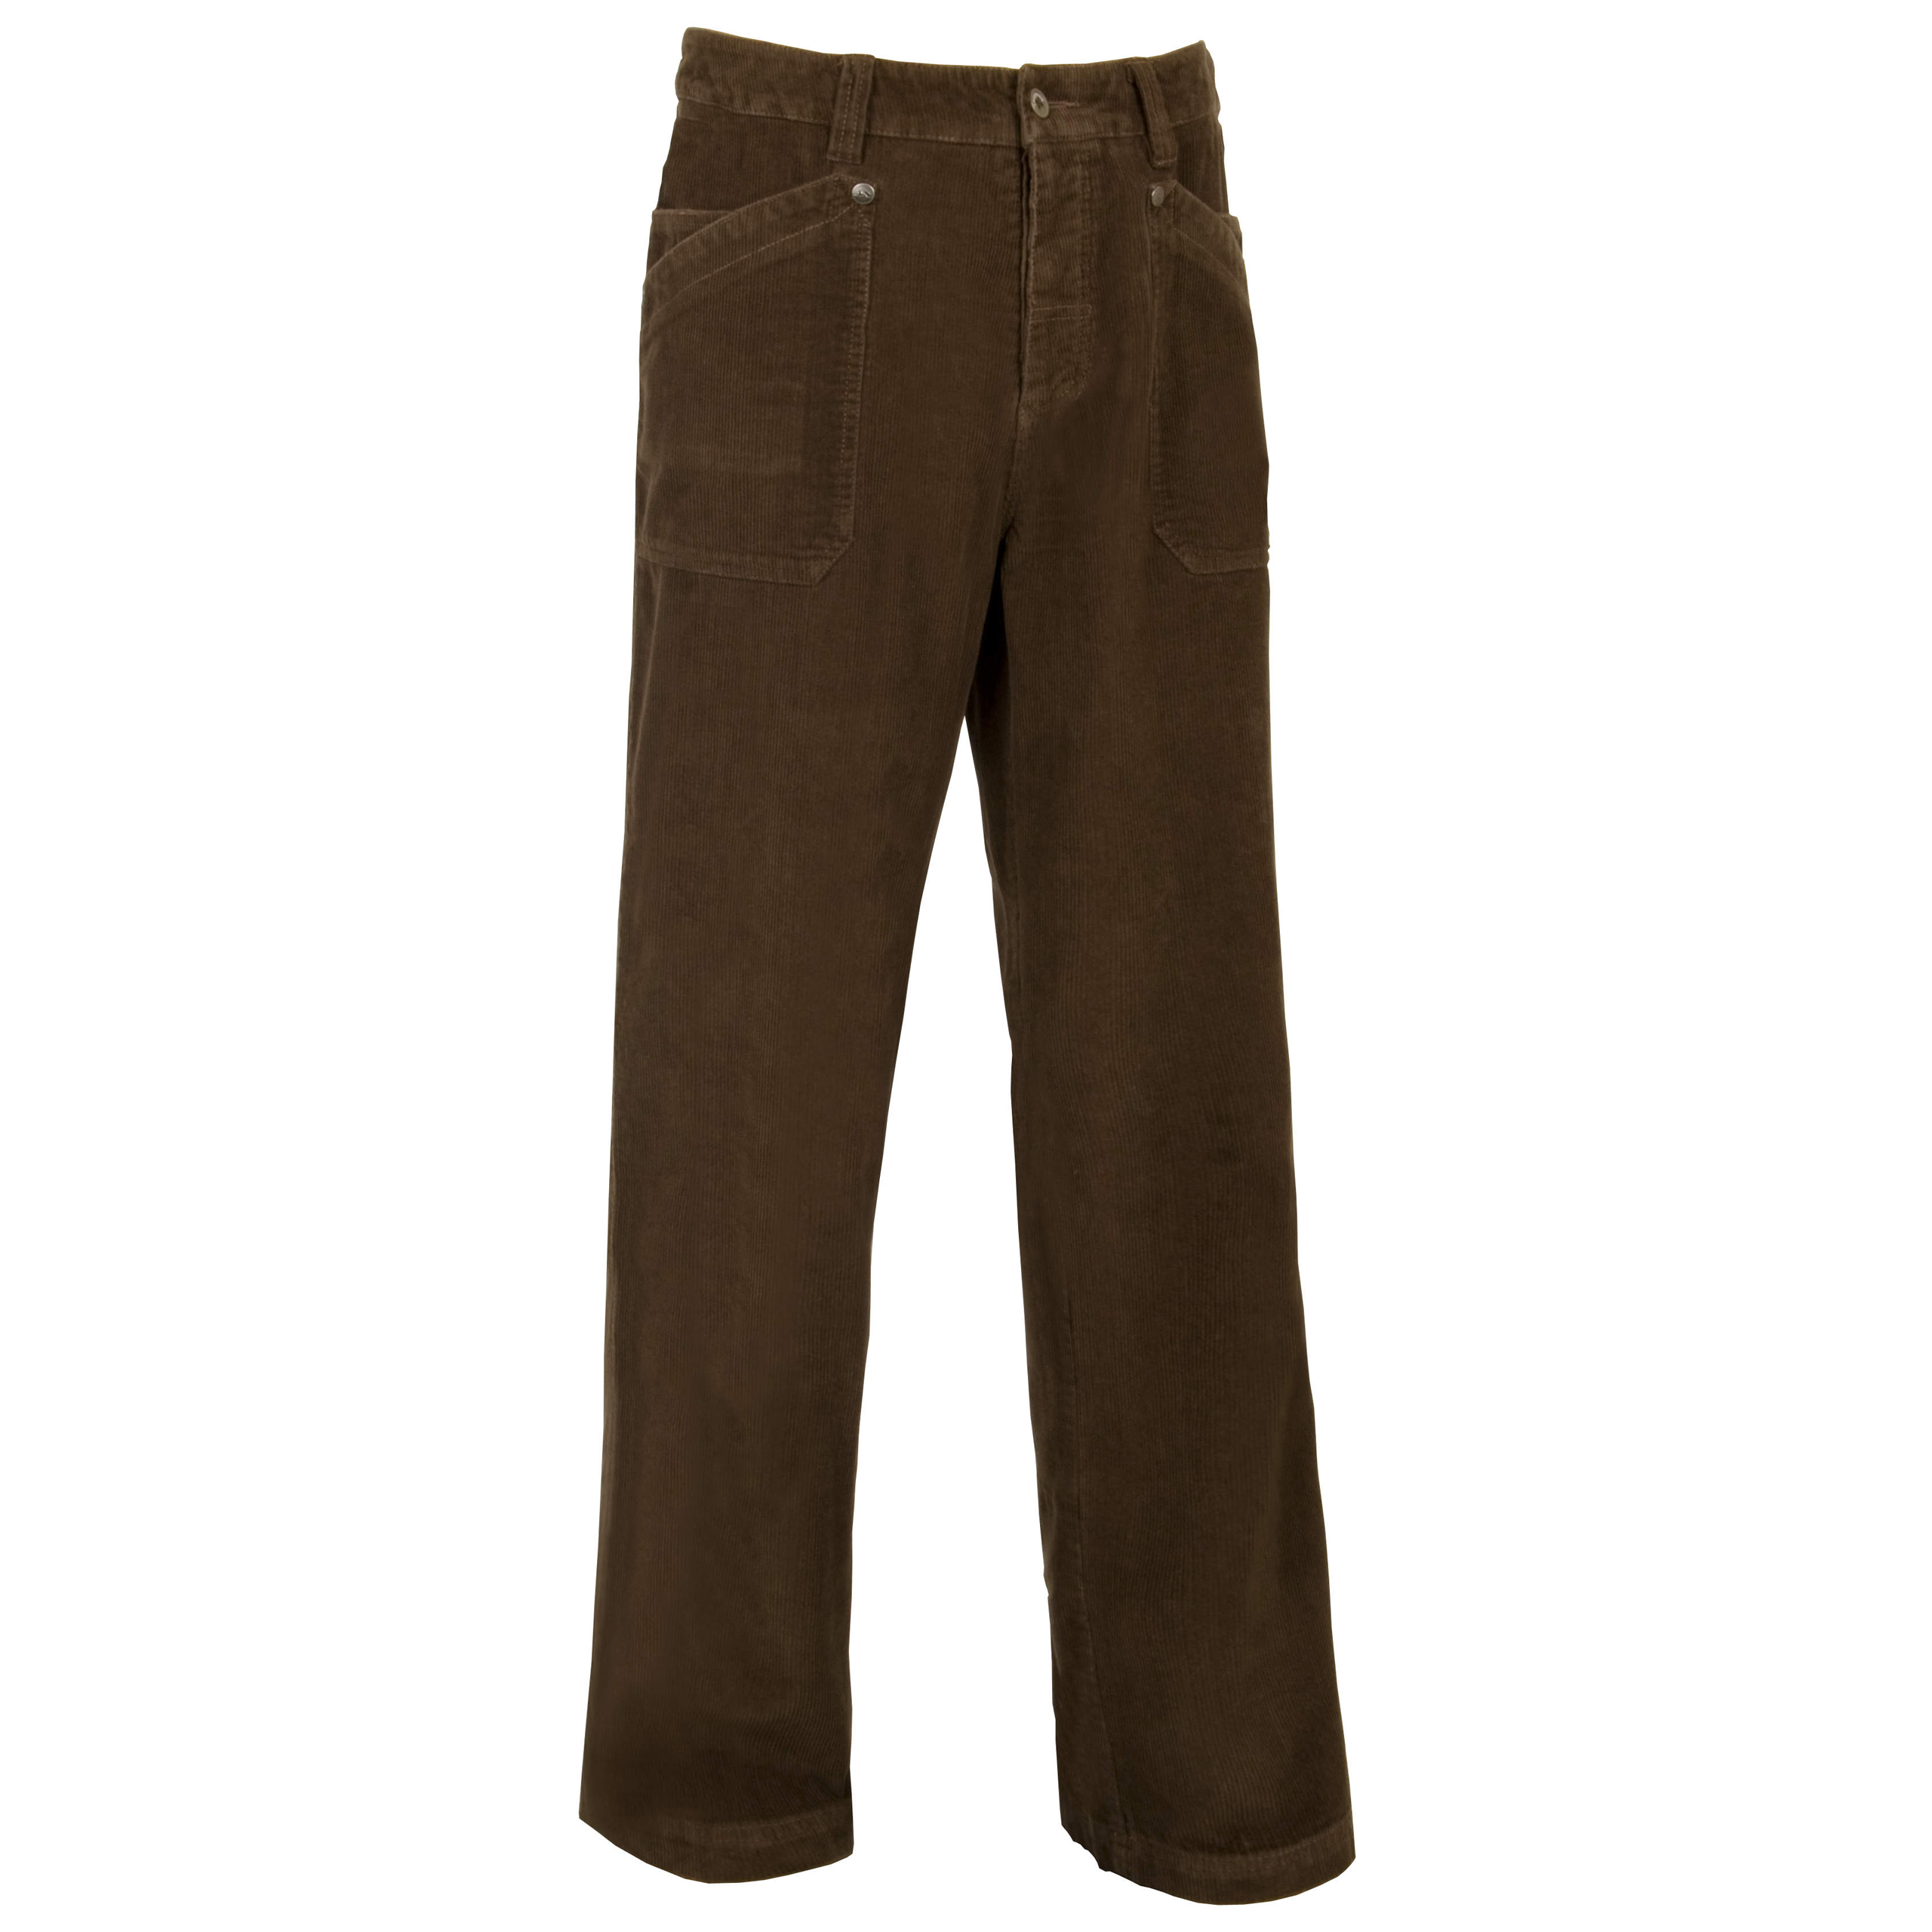 Expand your selection of casual trousers with classic men's chinos, chunky cords, rugged cargo trousers or smooth, soft-to-the-touch moleskins.